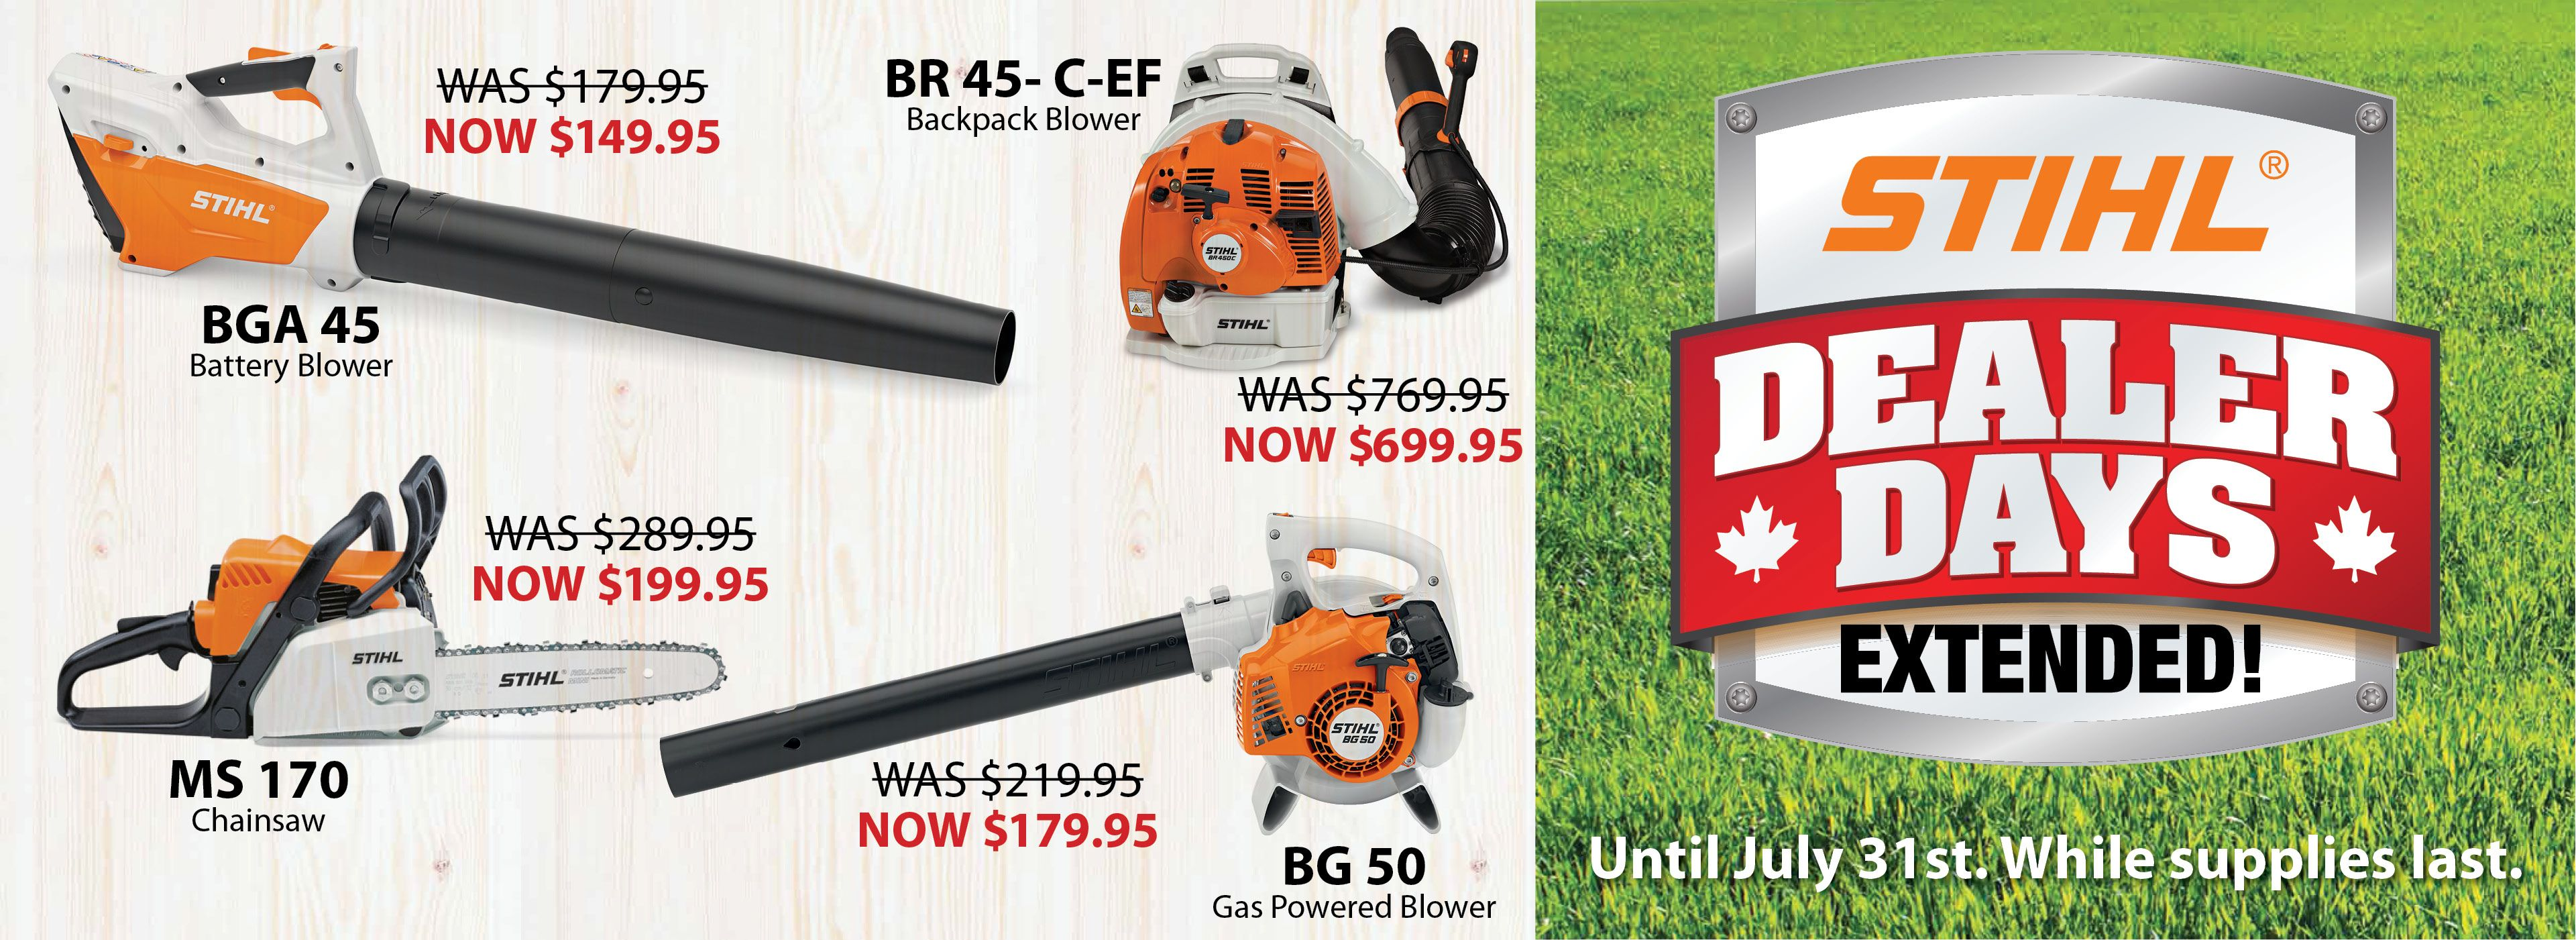 STIHL SALE EXTENDED